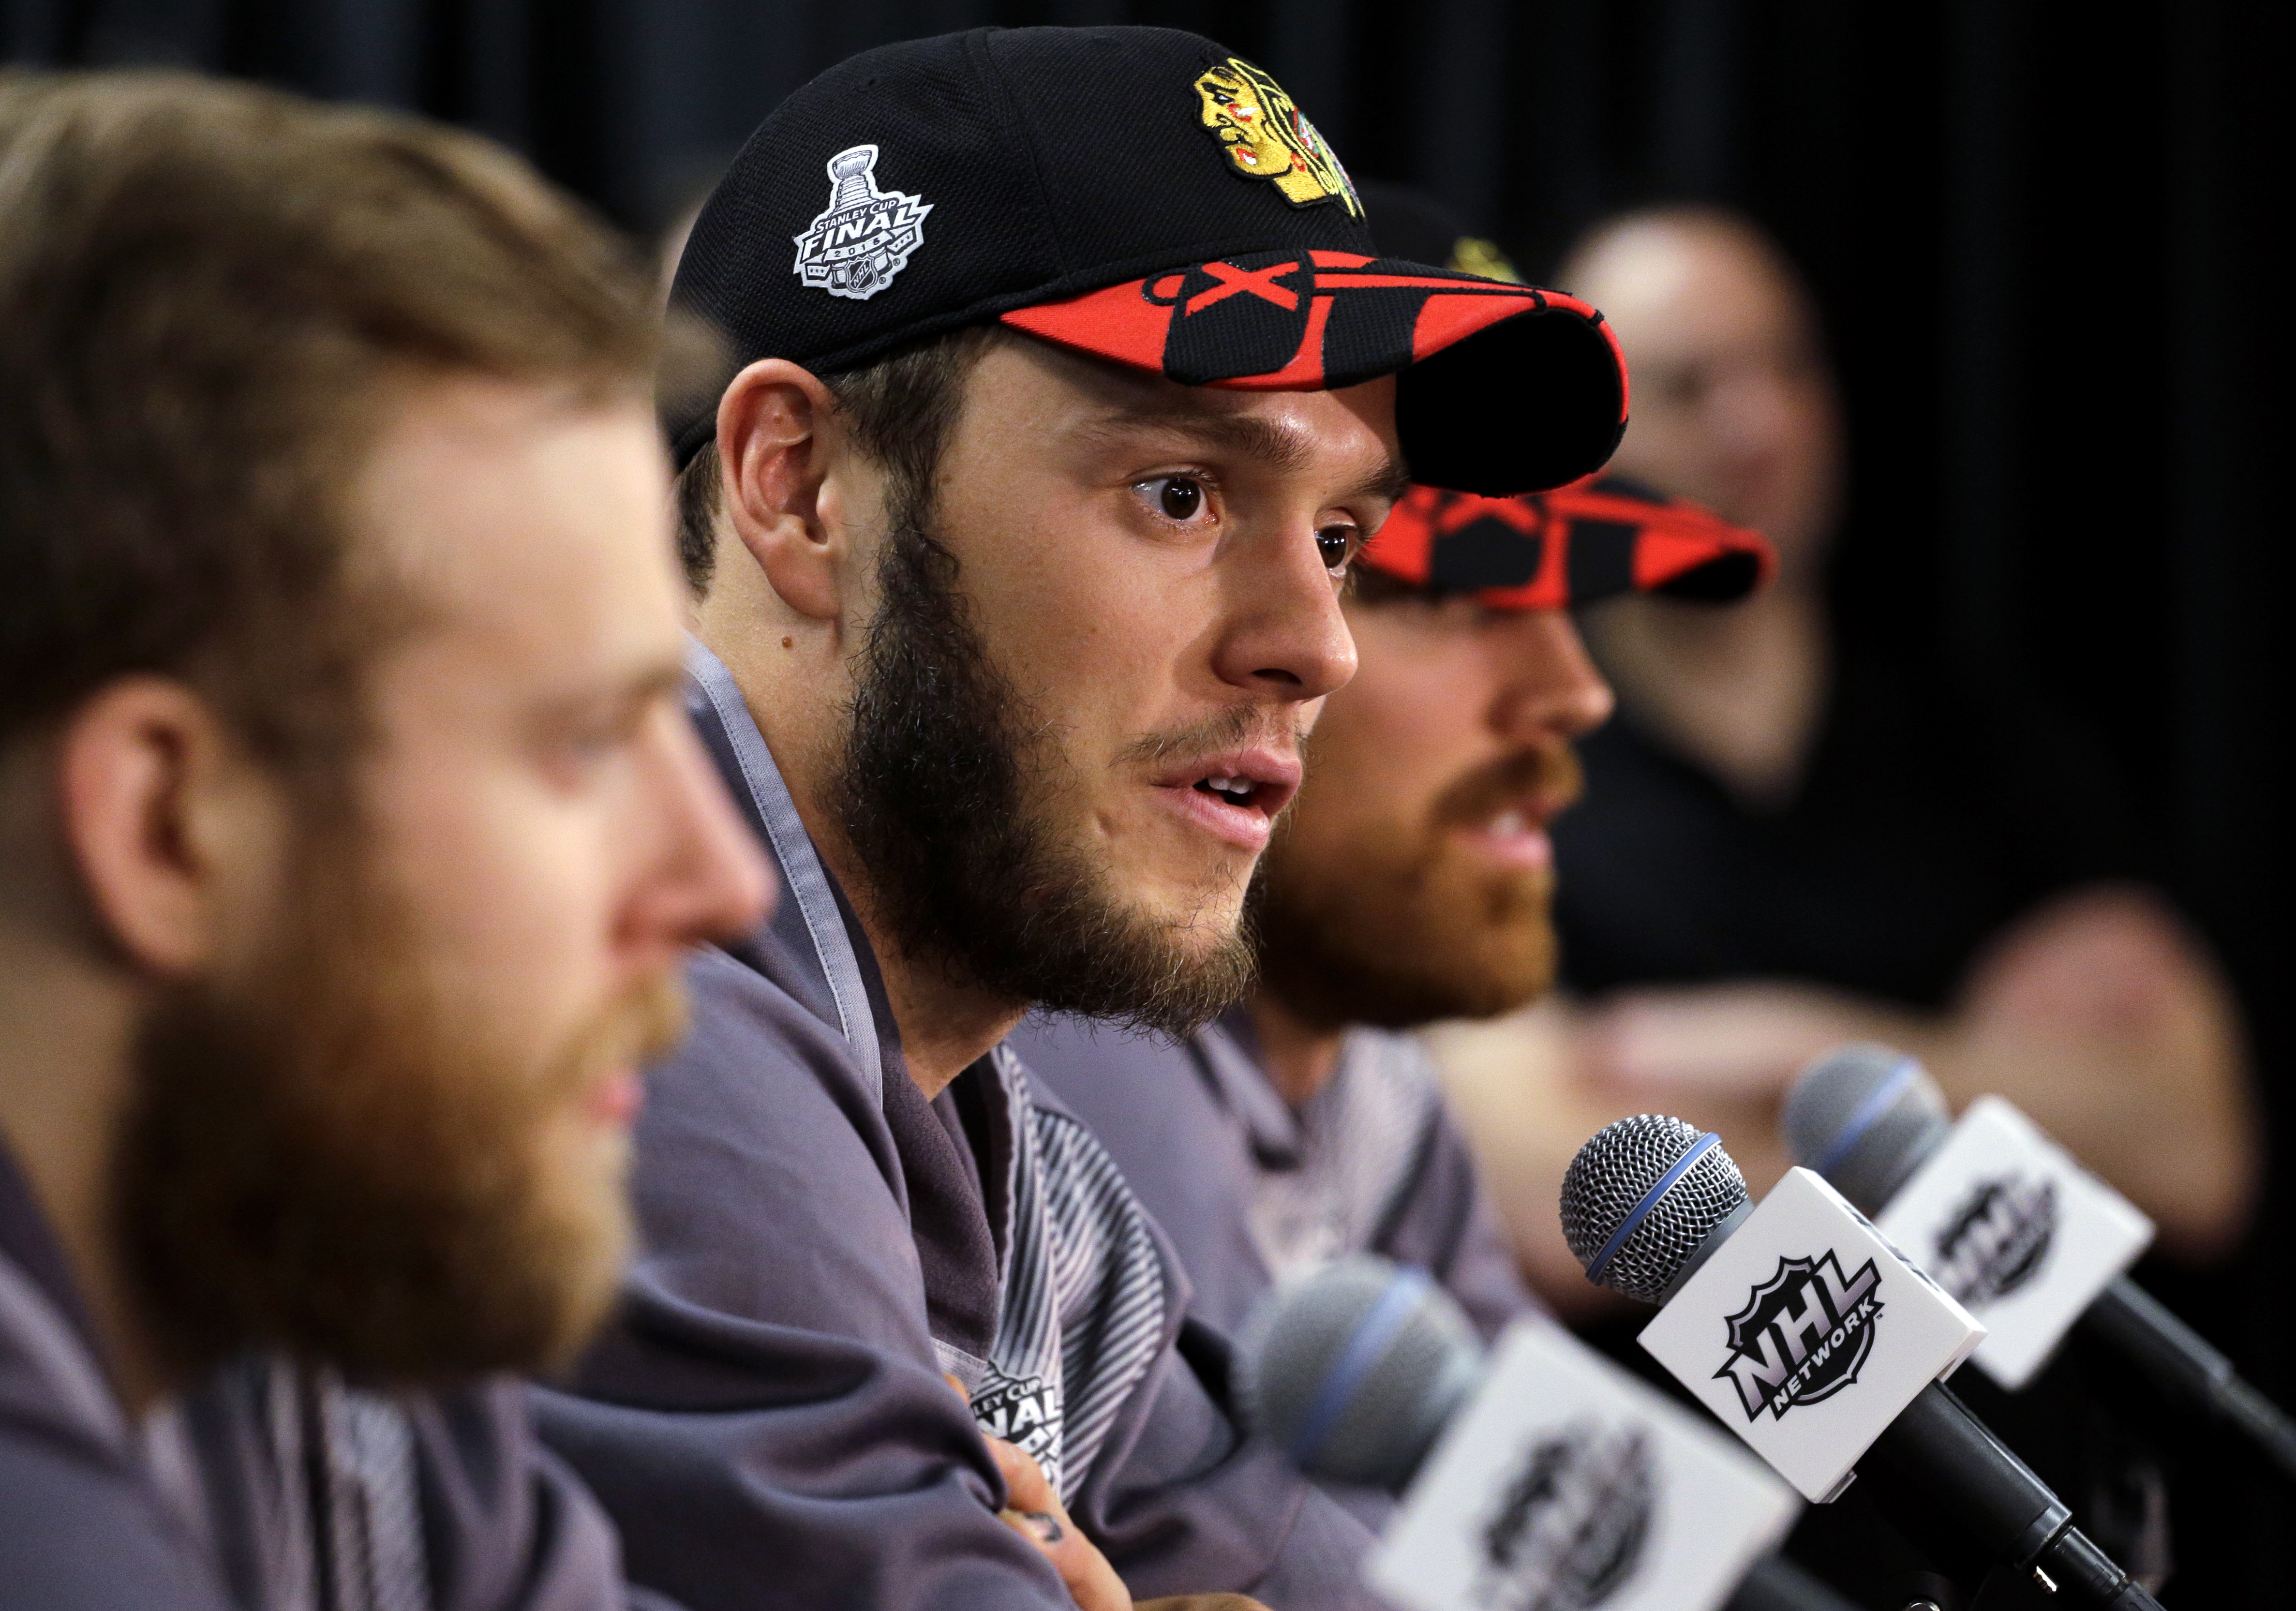 Chicago Blackhawks center Jonathan Toews talks during a news conference, Sunday, June 14, 2015, in Chicago. The Chicago Blackhawks now lead the series 3-2 and have the opportunity to win the Cup at home for the first time since 1938. Game 6 is scheduled f